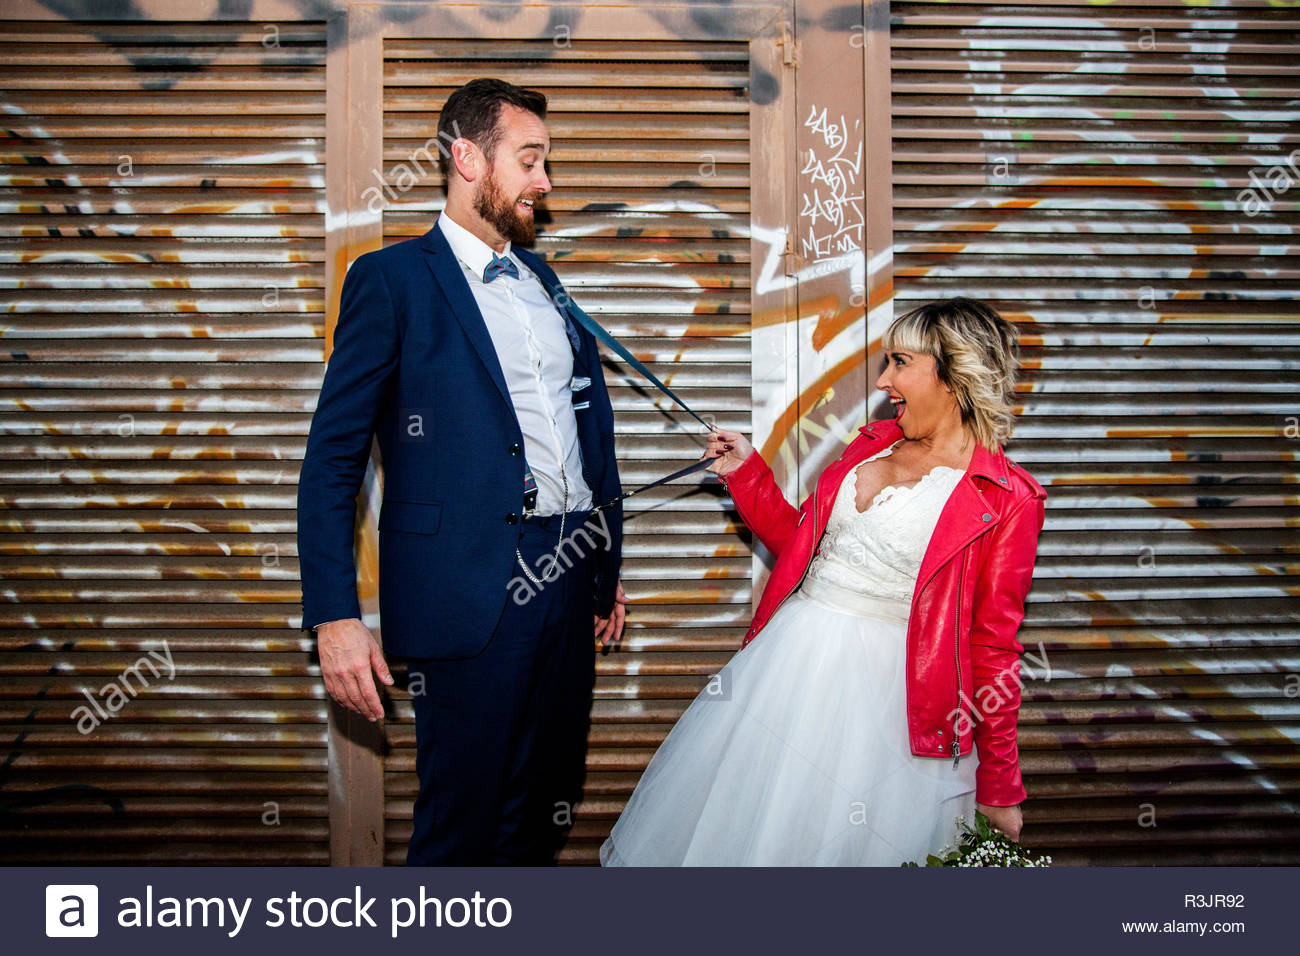 Couple of newlyweds play with suspenders in front of a graffiti metal fence. - Stock Image